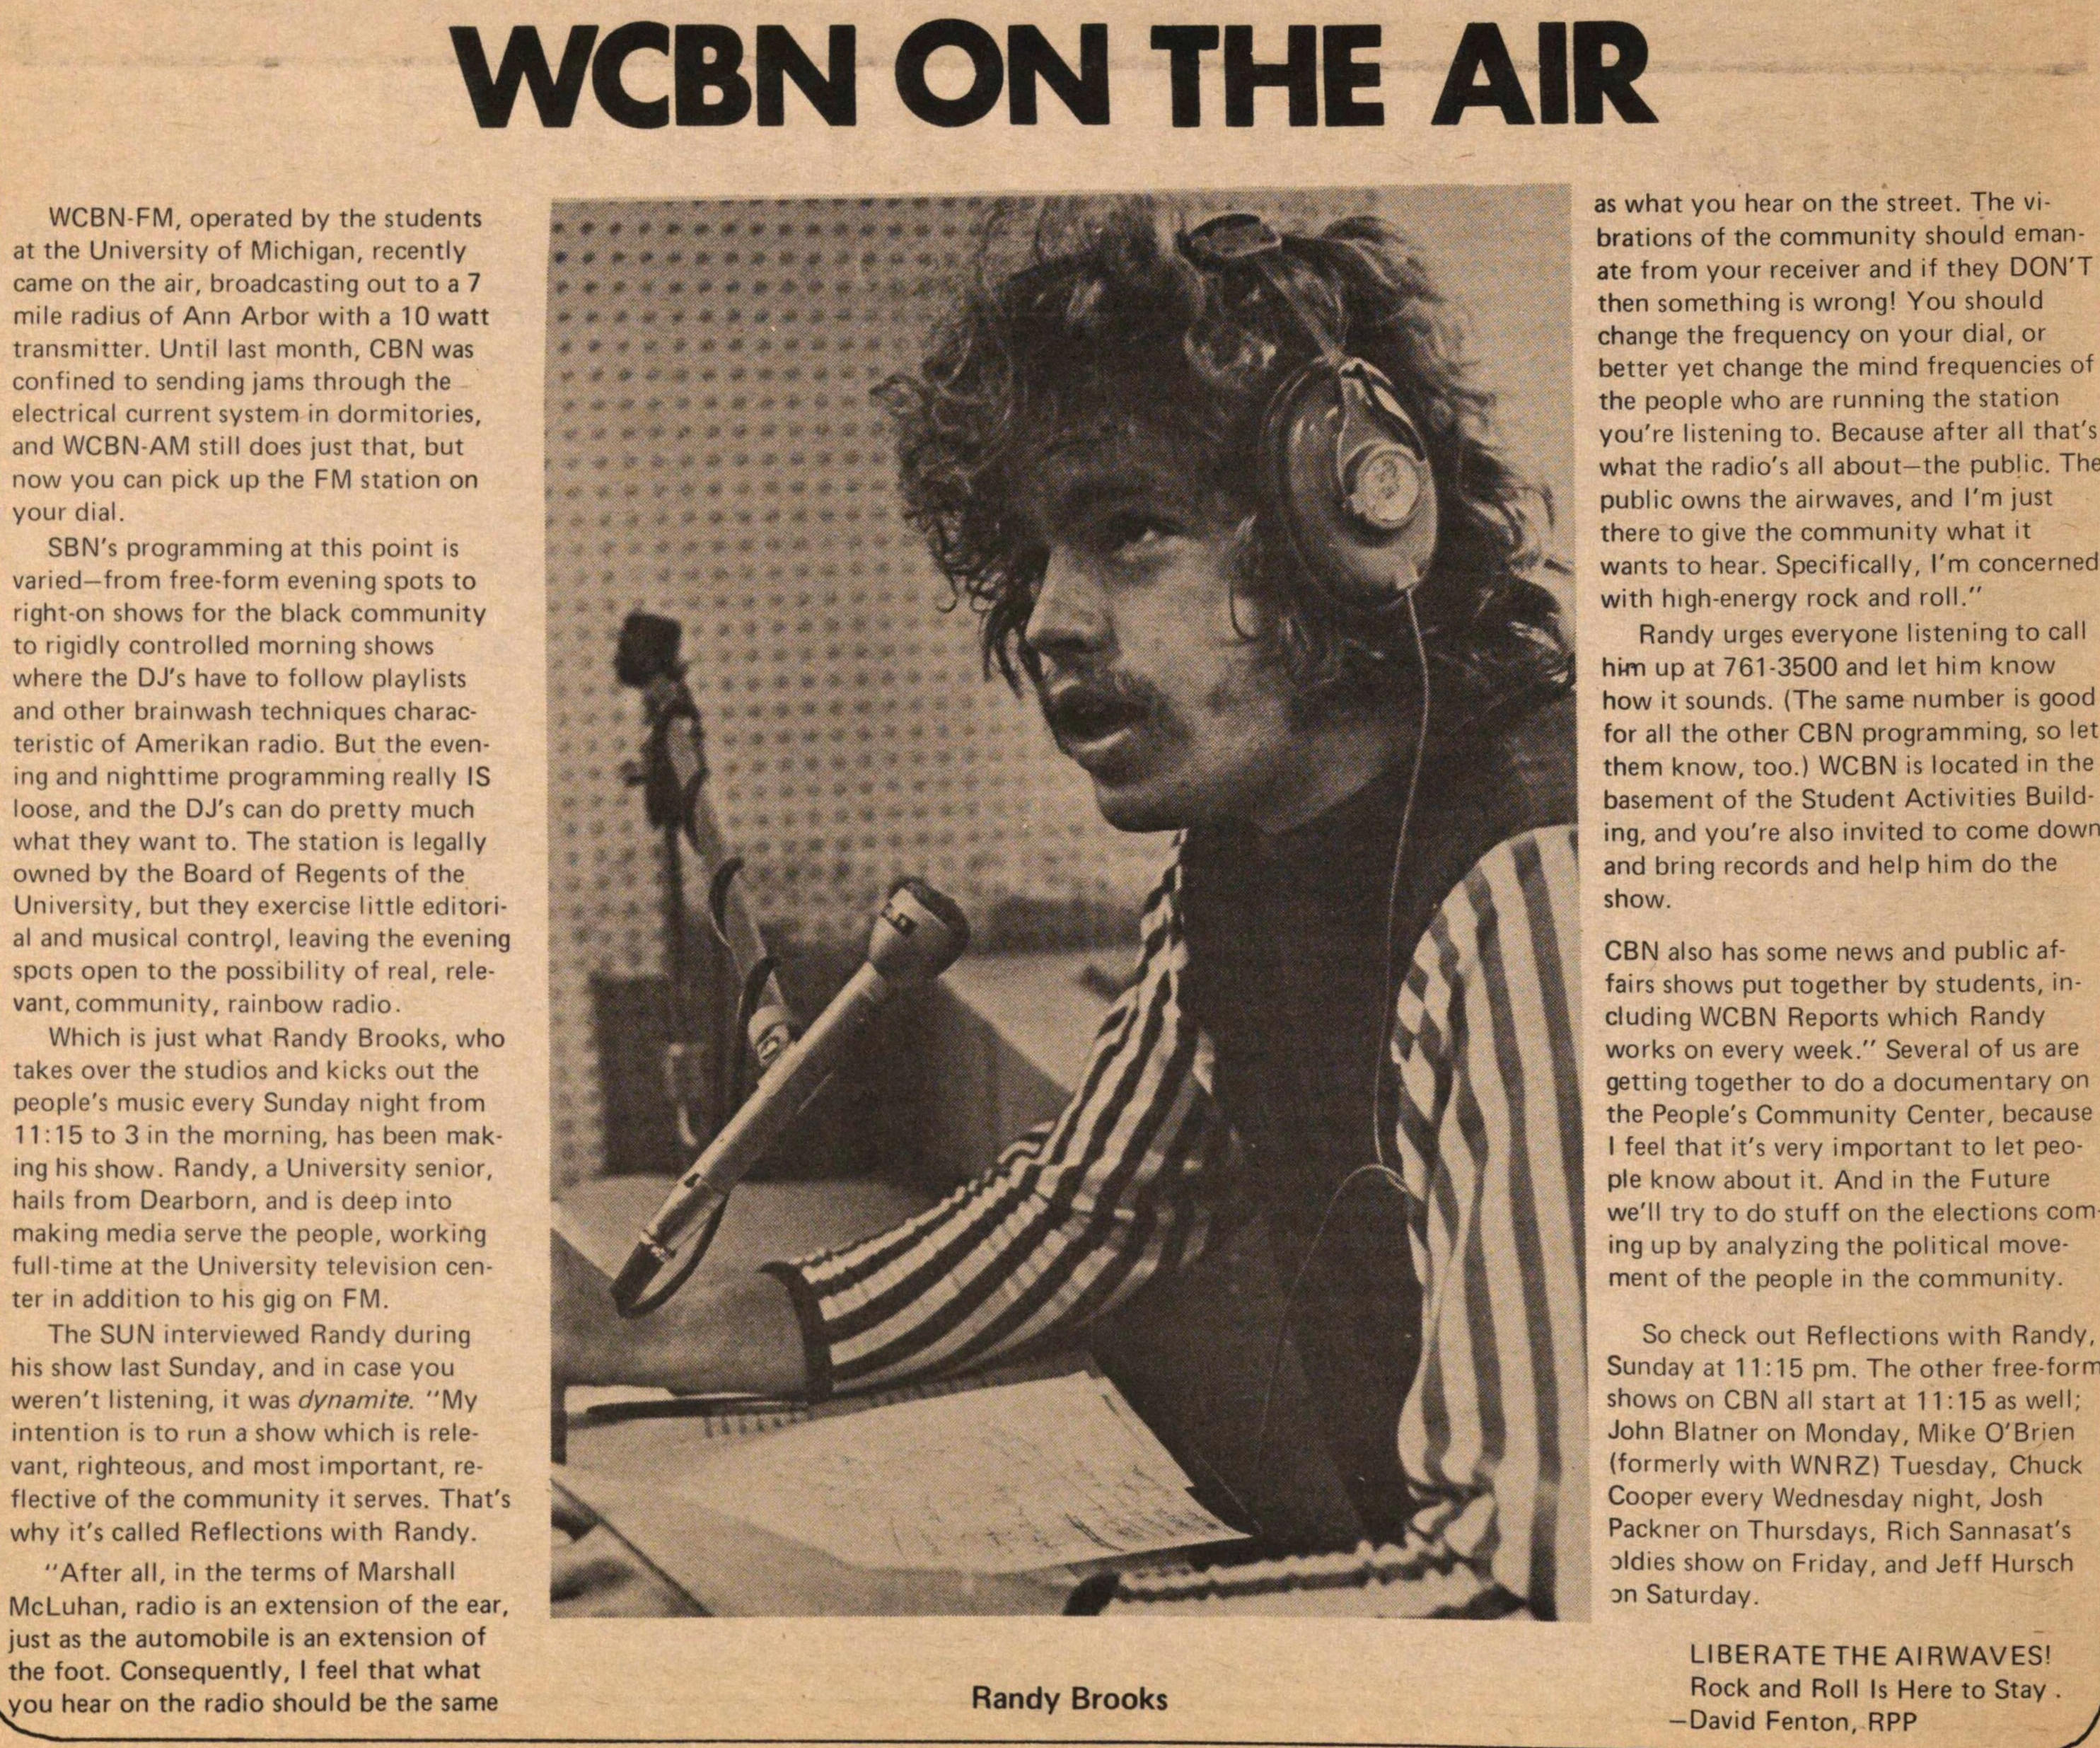 Wcbn On The Air image